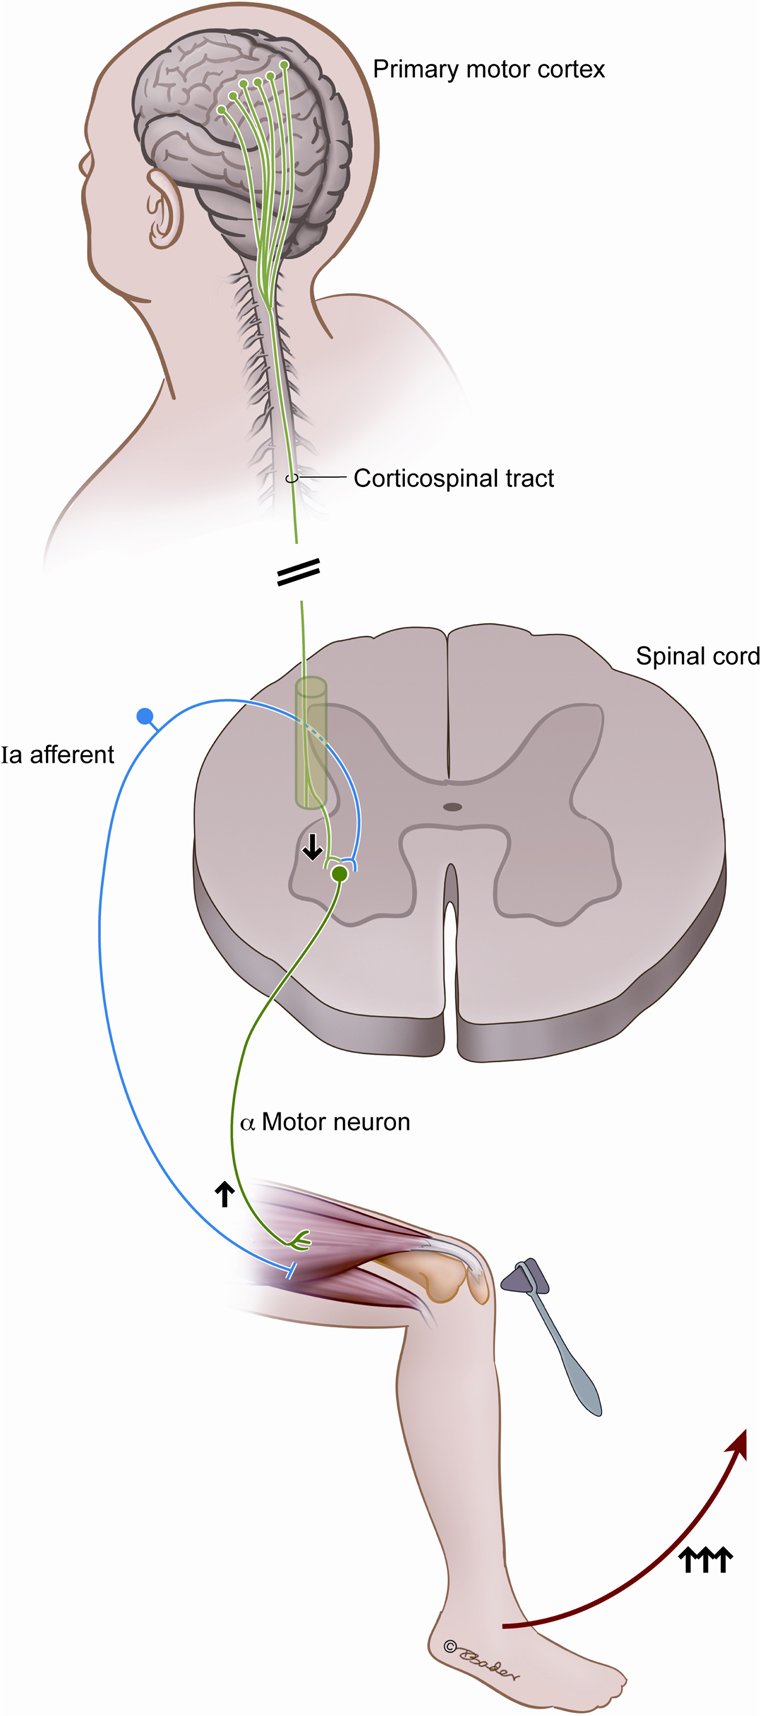 reflex arc diagram mcb wiring frontiers   lower motor neuron findings after upper injury: insights from ...